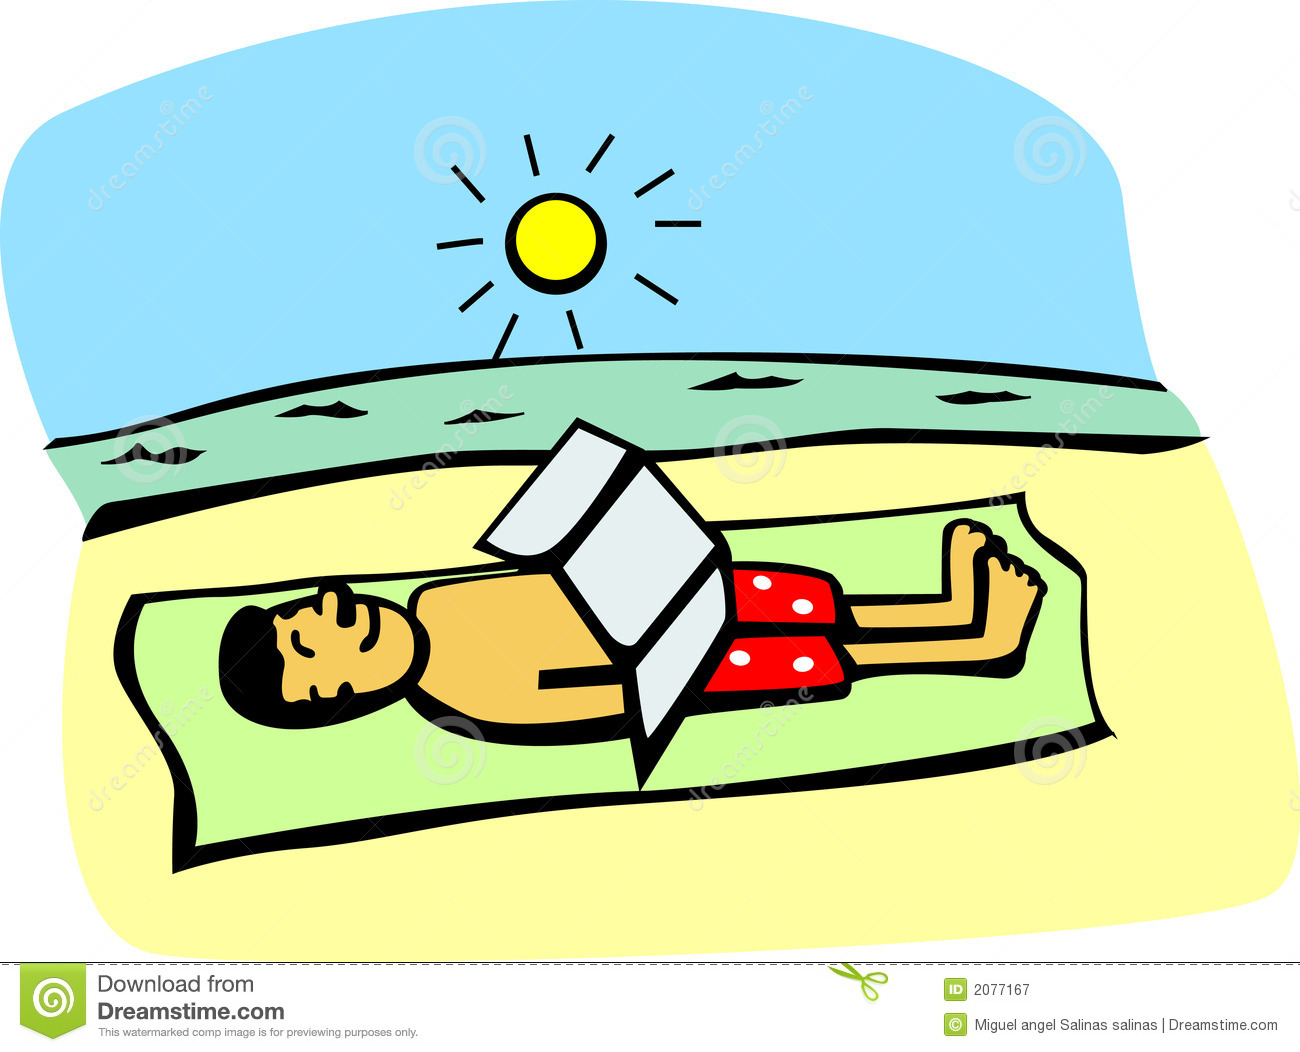 Tanned clipart #12